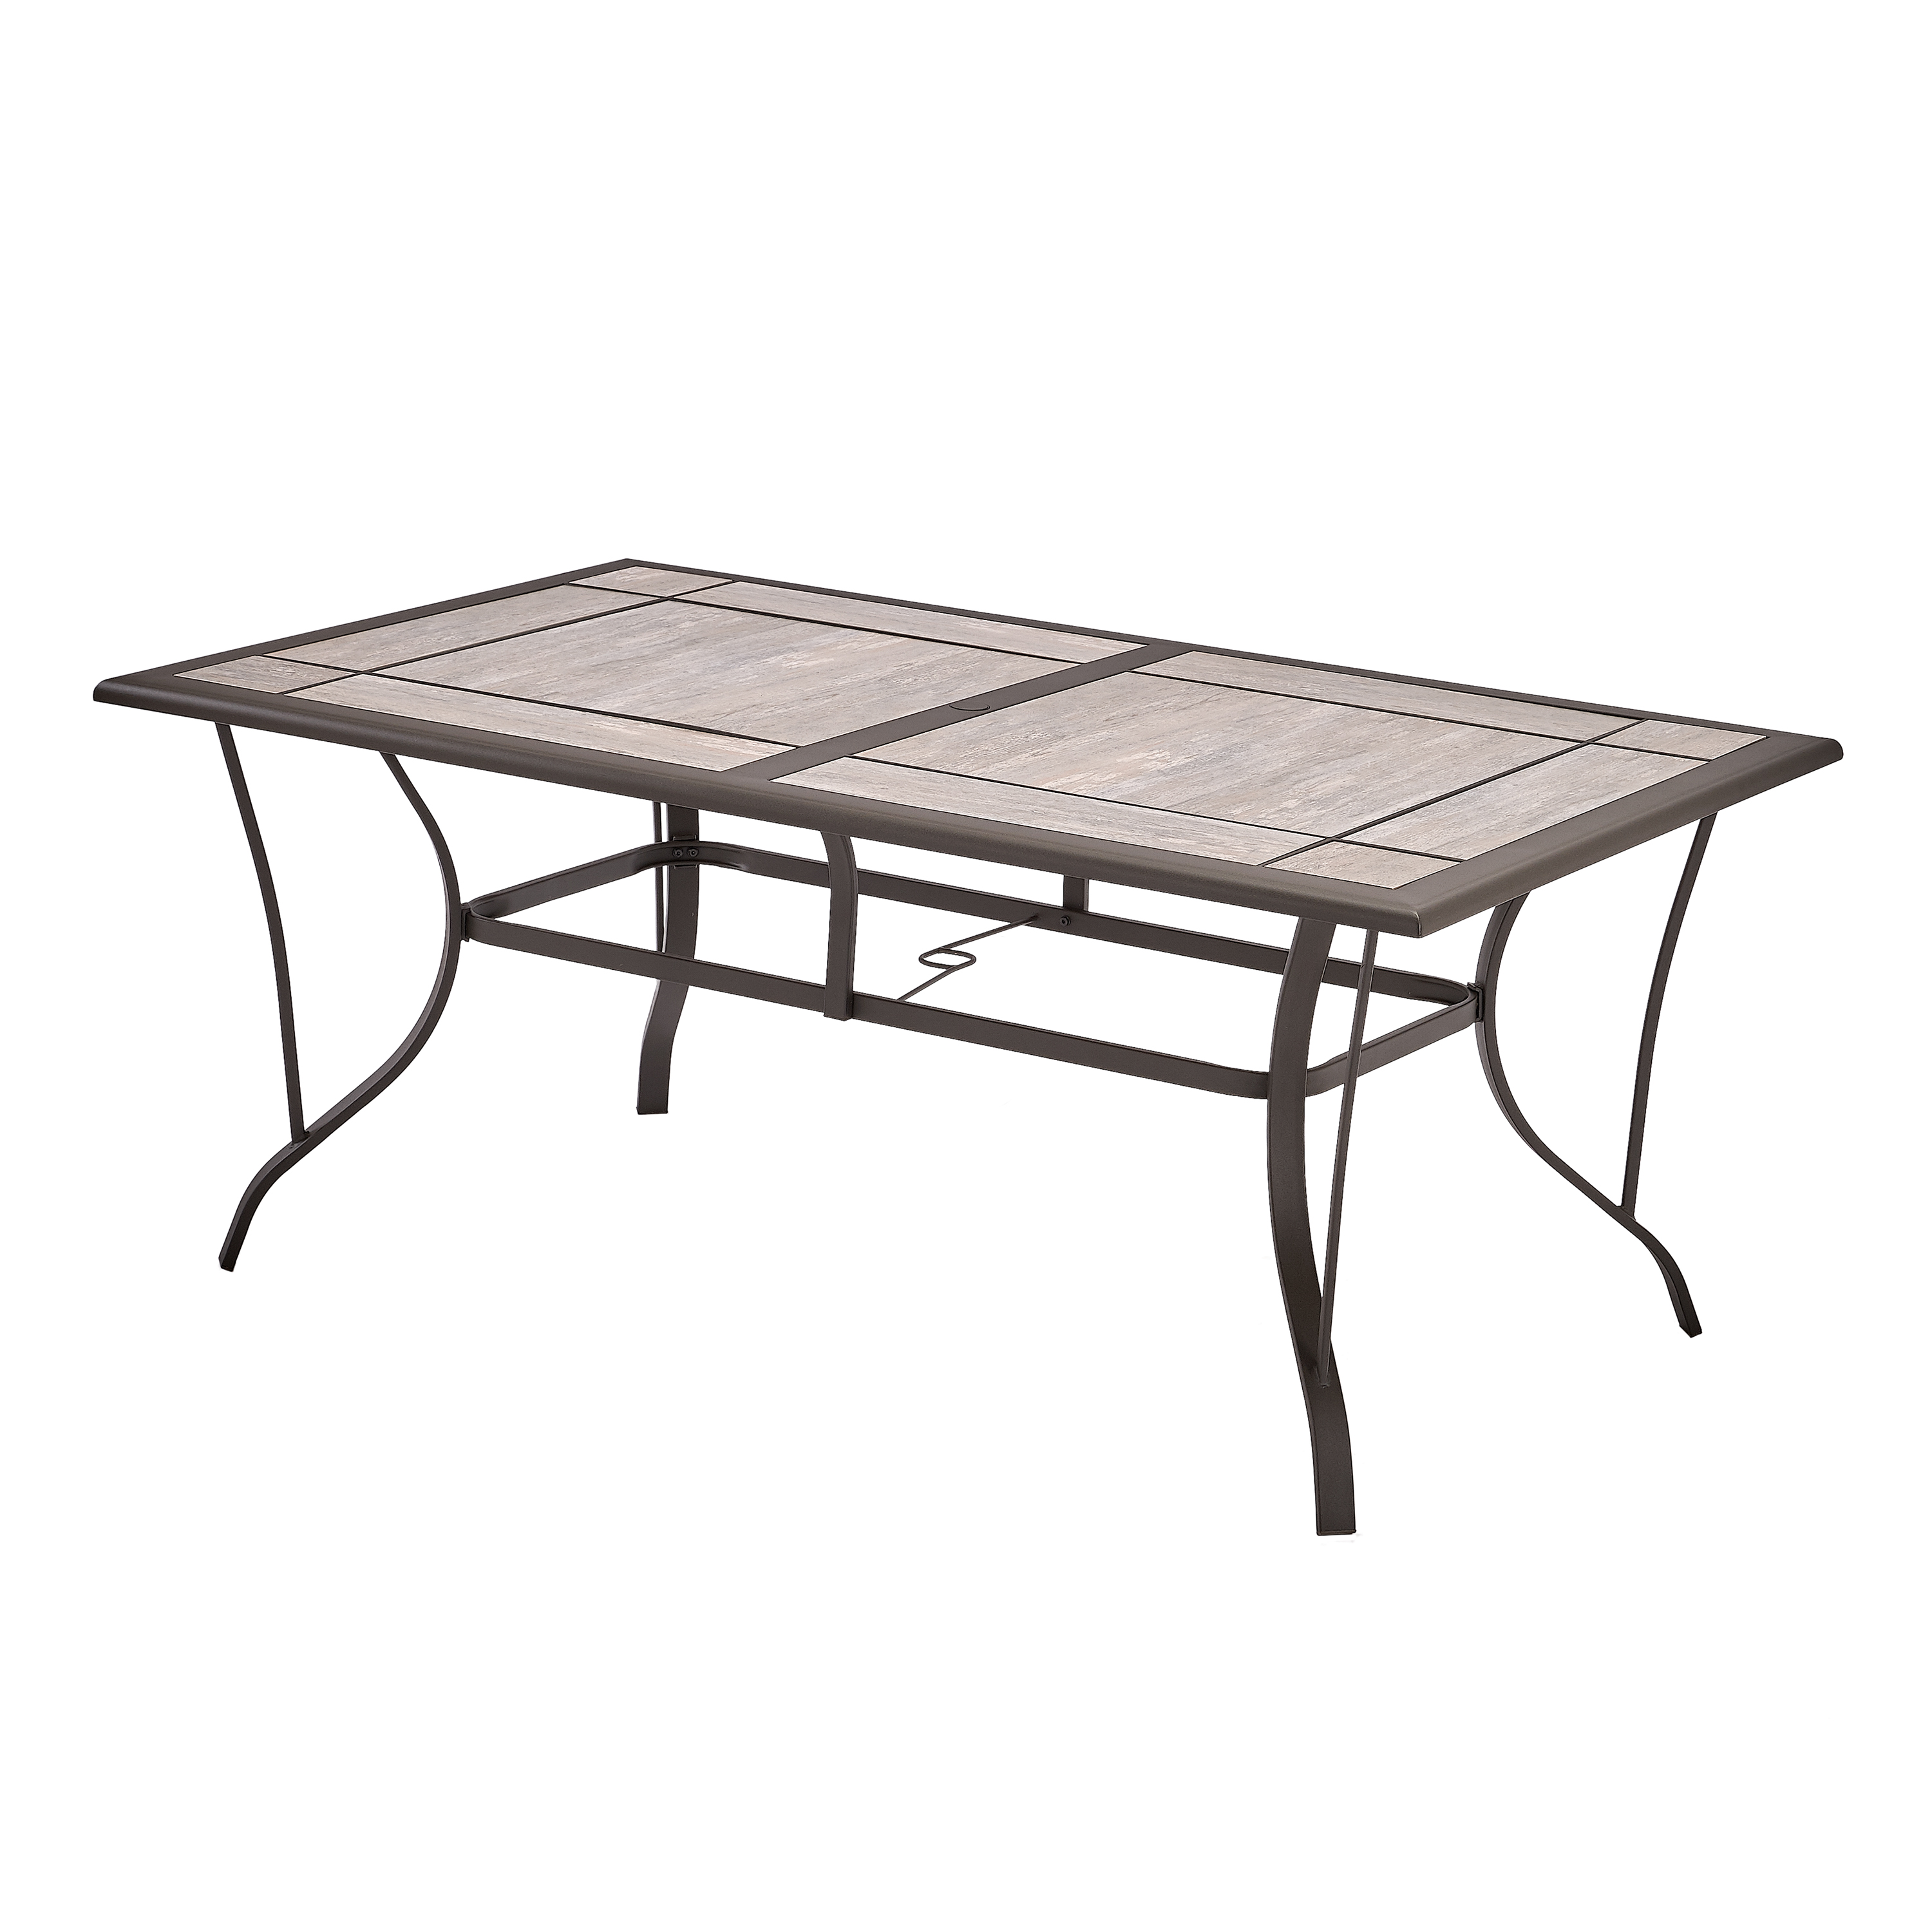 Better Homes & Gardens Everson Rectangular Patio Dining Table